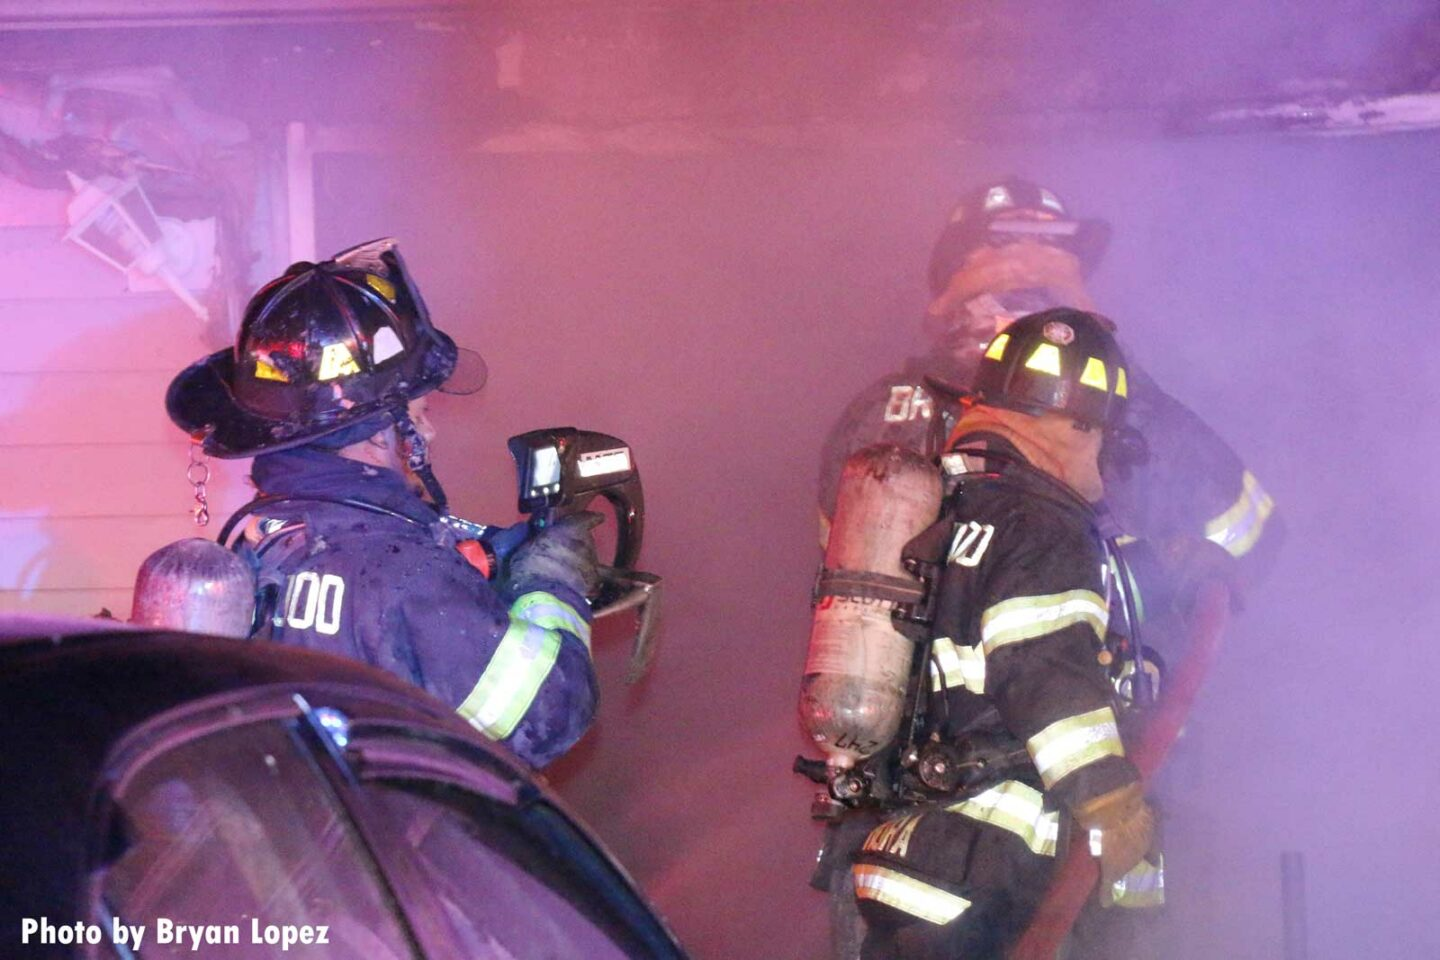 Firefighters using equipment at Brentwood fire